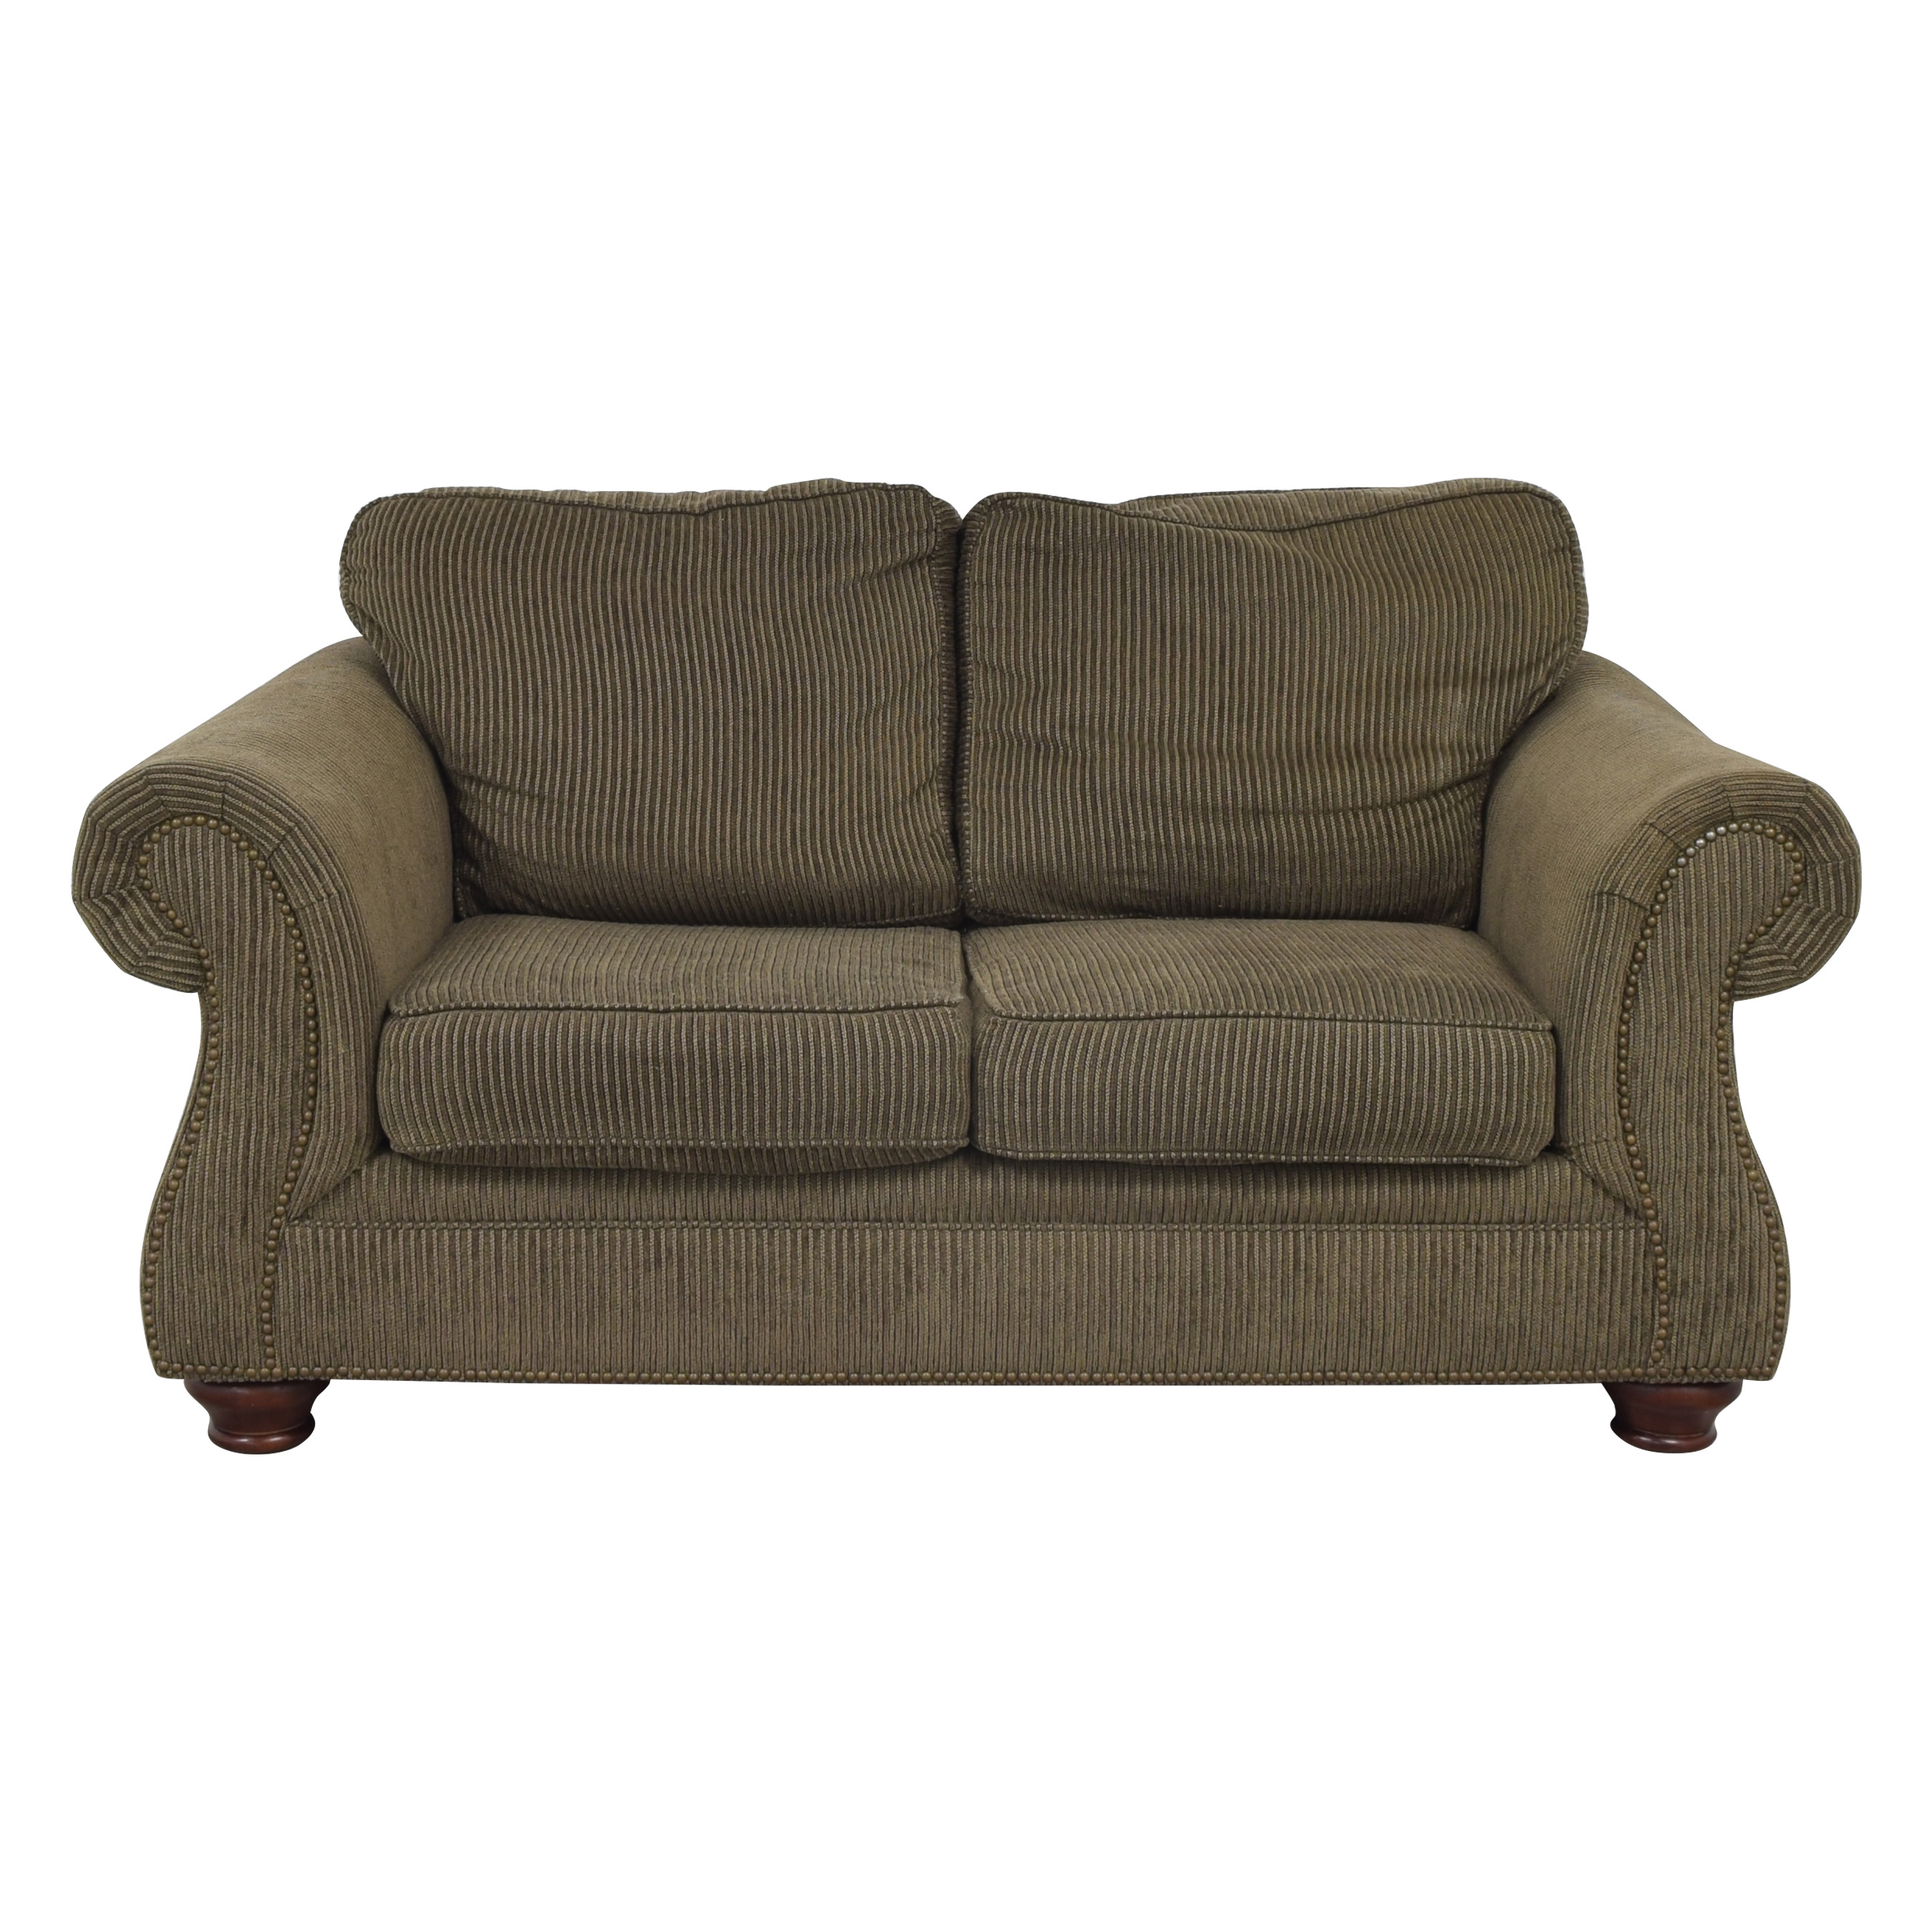 Raymour & Flanigan Raymour & Flanigan Broyhill Roll Arm Loveseat dimensions